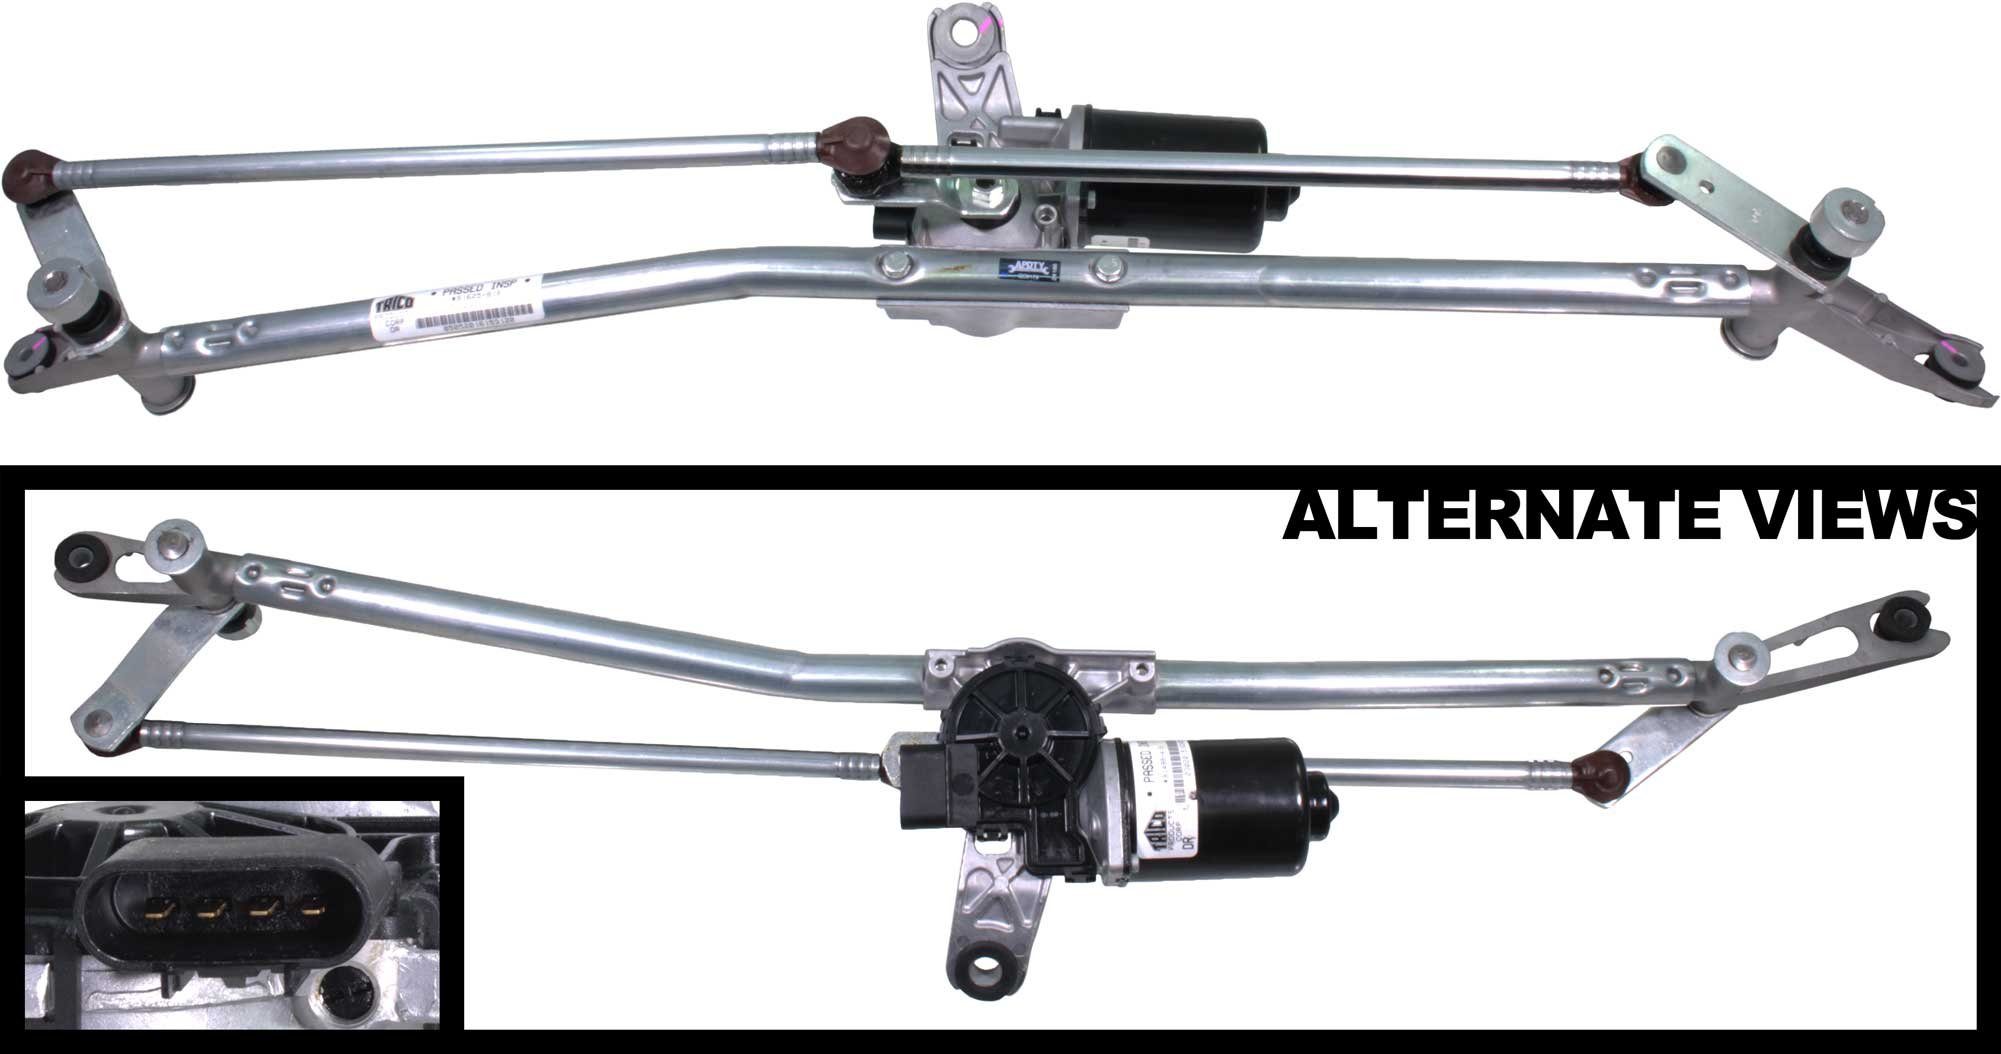 APDTY 103926 Windshield Wiper Motor And Linkage Transmission Complete Assembly For 2002-2004 Dodge Ram 1500 2500 3500 Pickup by APDTY